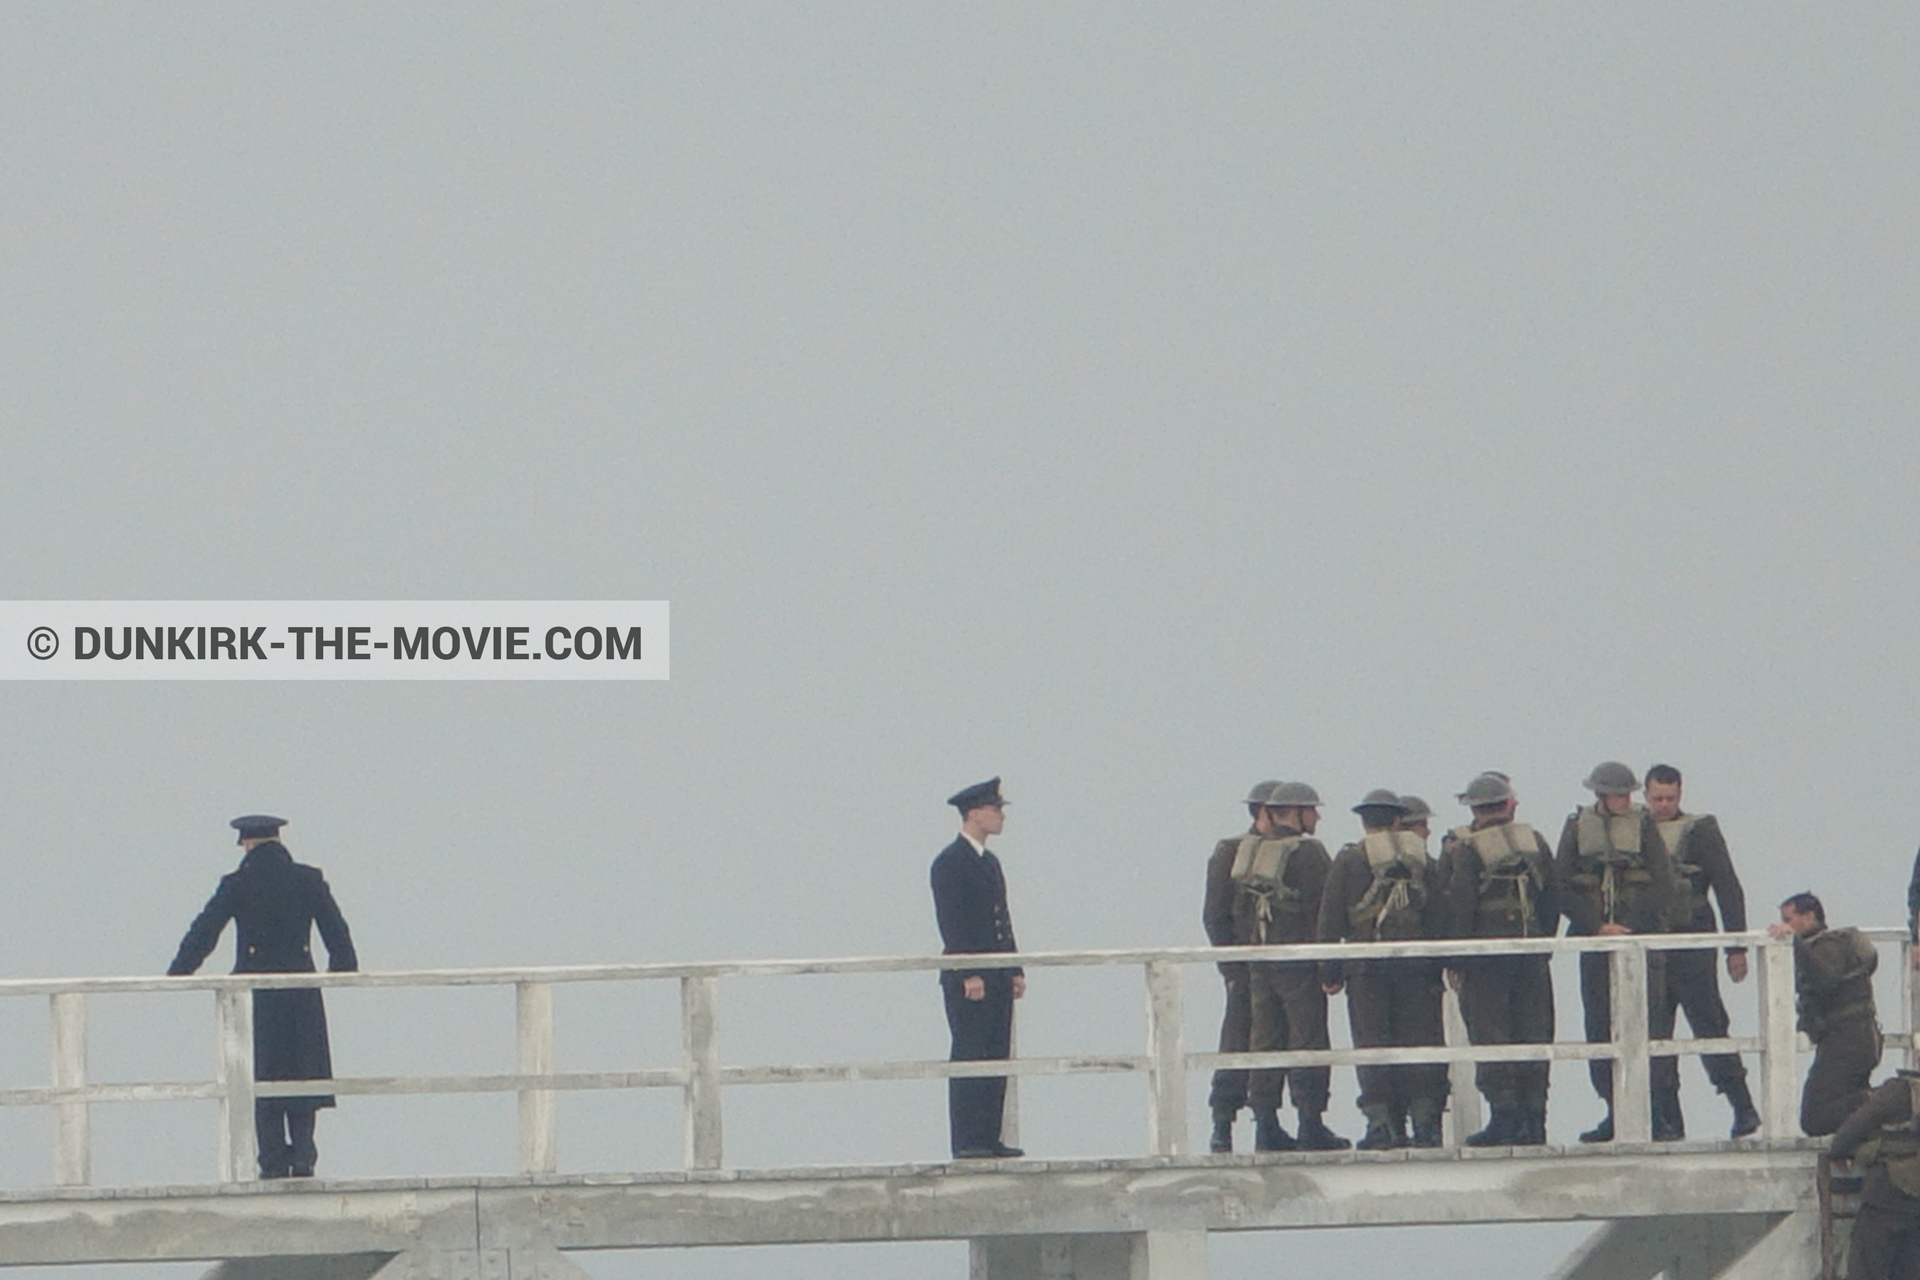 Picture with actor, grey sky, supernumeraries, EST pier, Kenneth Branagh,  from behind the scene of the Dunkirk movie by Nolan